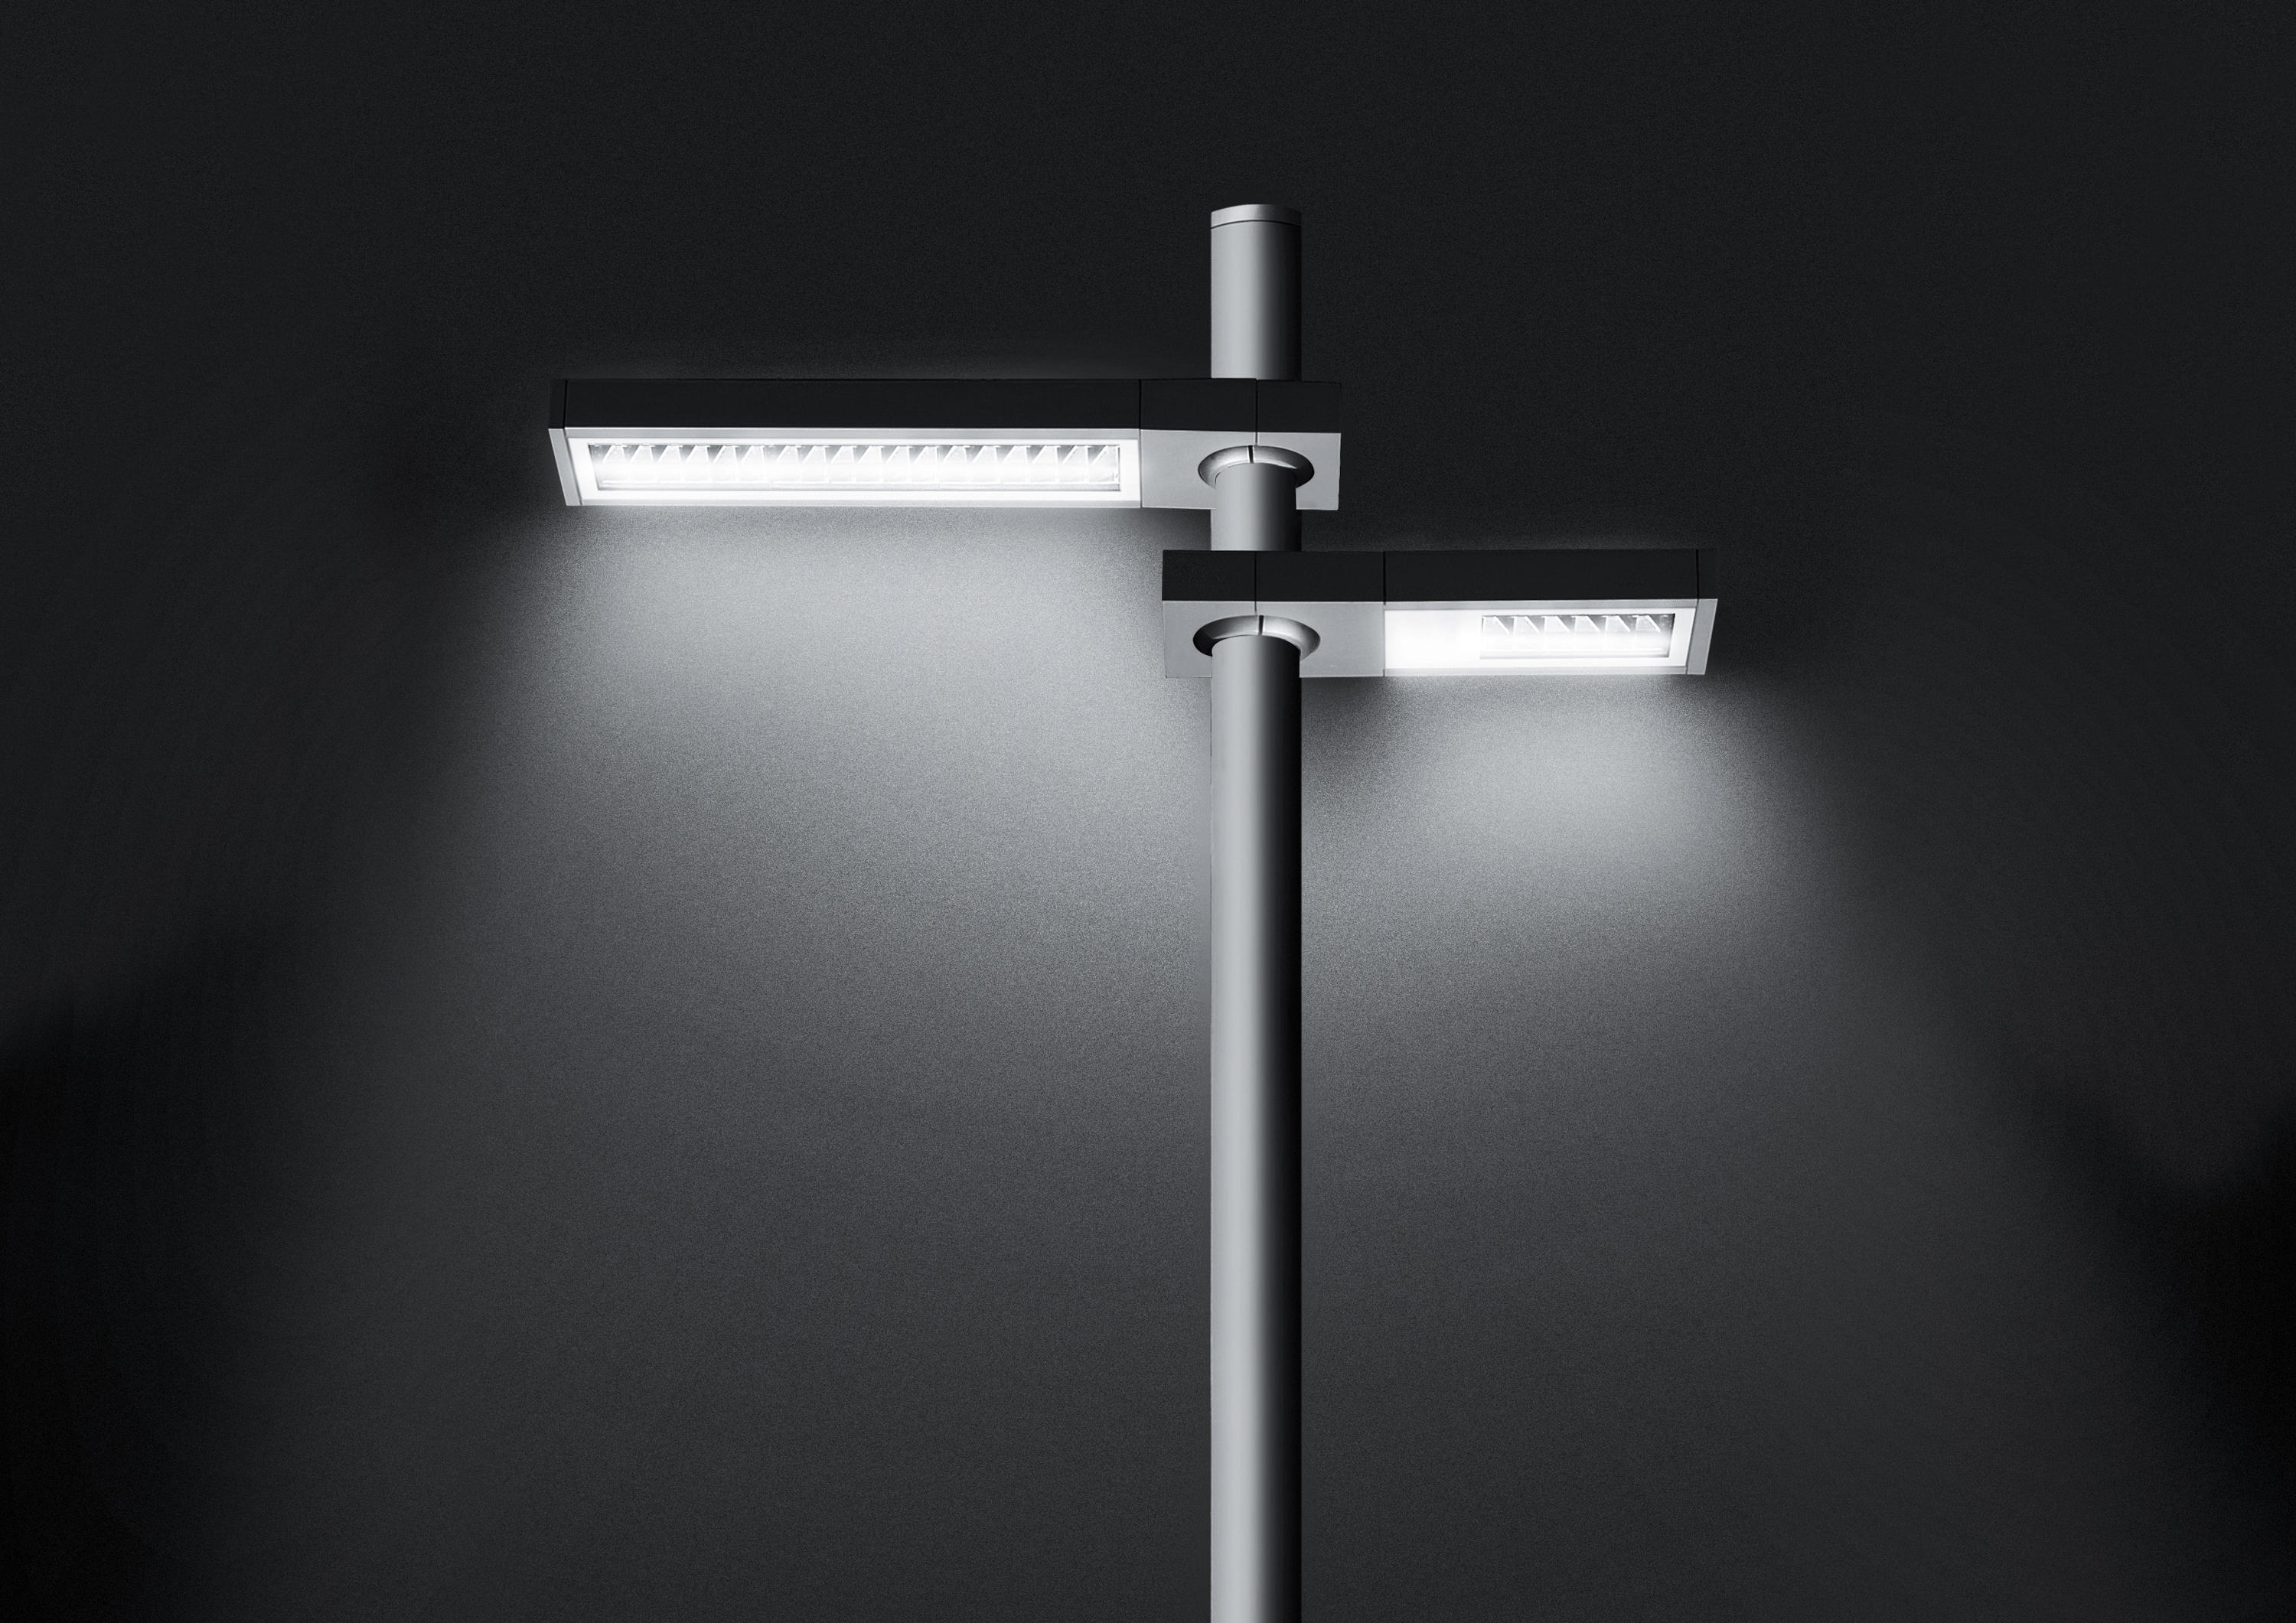 Avenue street lighting 12 led led lights from simes for Lampadaire exterieur led